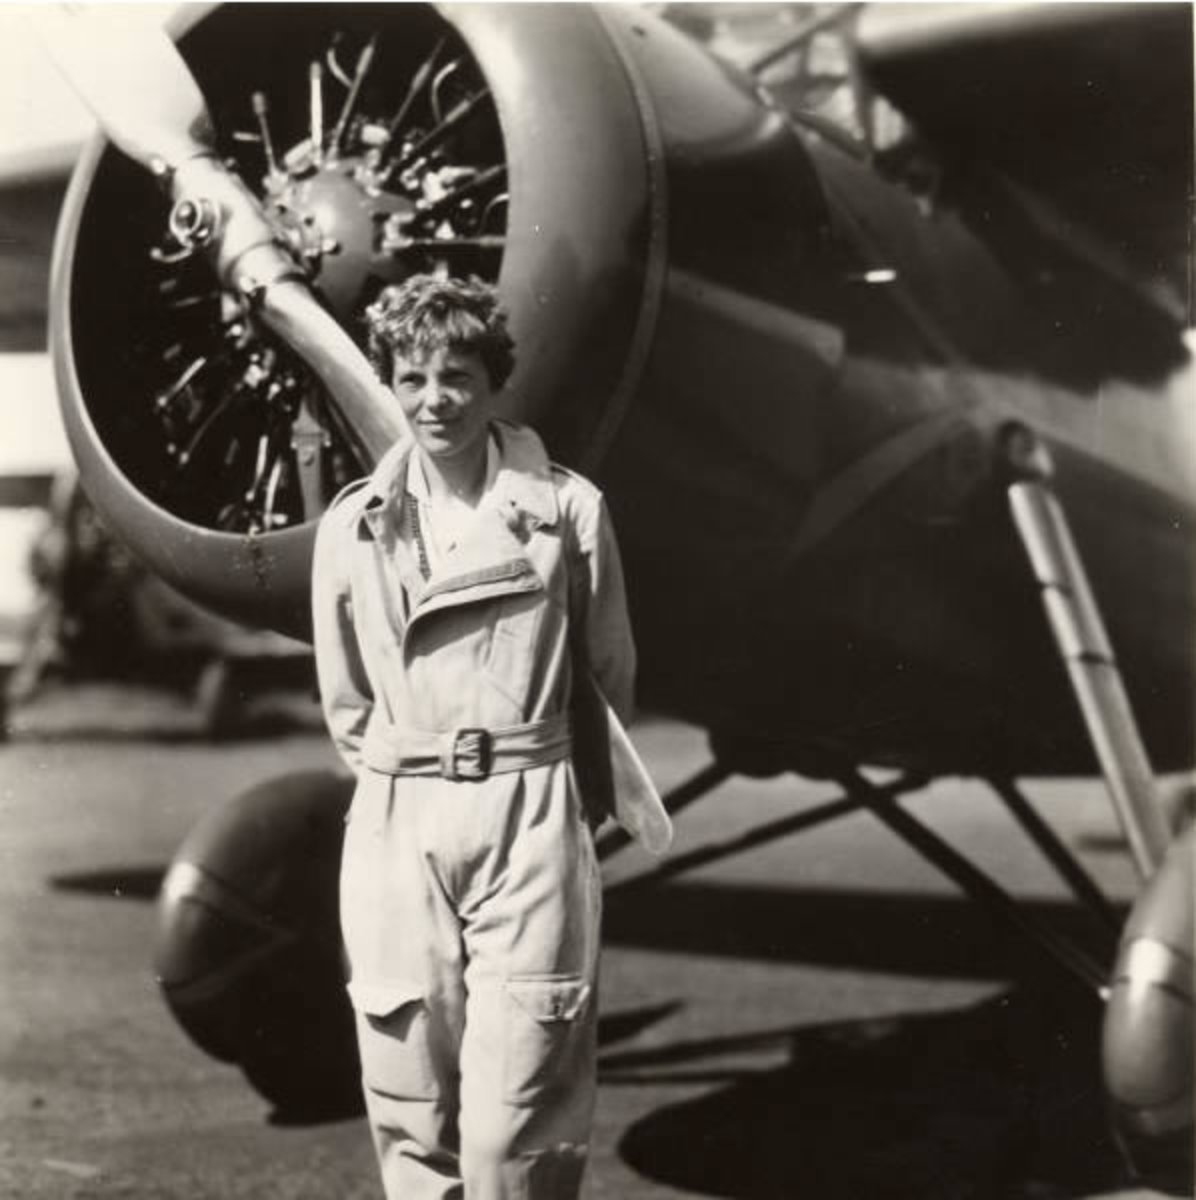 Amelia Earhart: Amelia Earhart standing in front of the propellers on her plane, ca. 1935. George Palmer Putnam Collection of Amelia Earhart Papers, Courtesy of Purdue University Libraries, Karnes Archives and Special Collections.